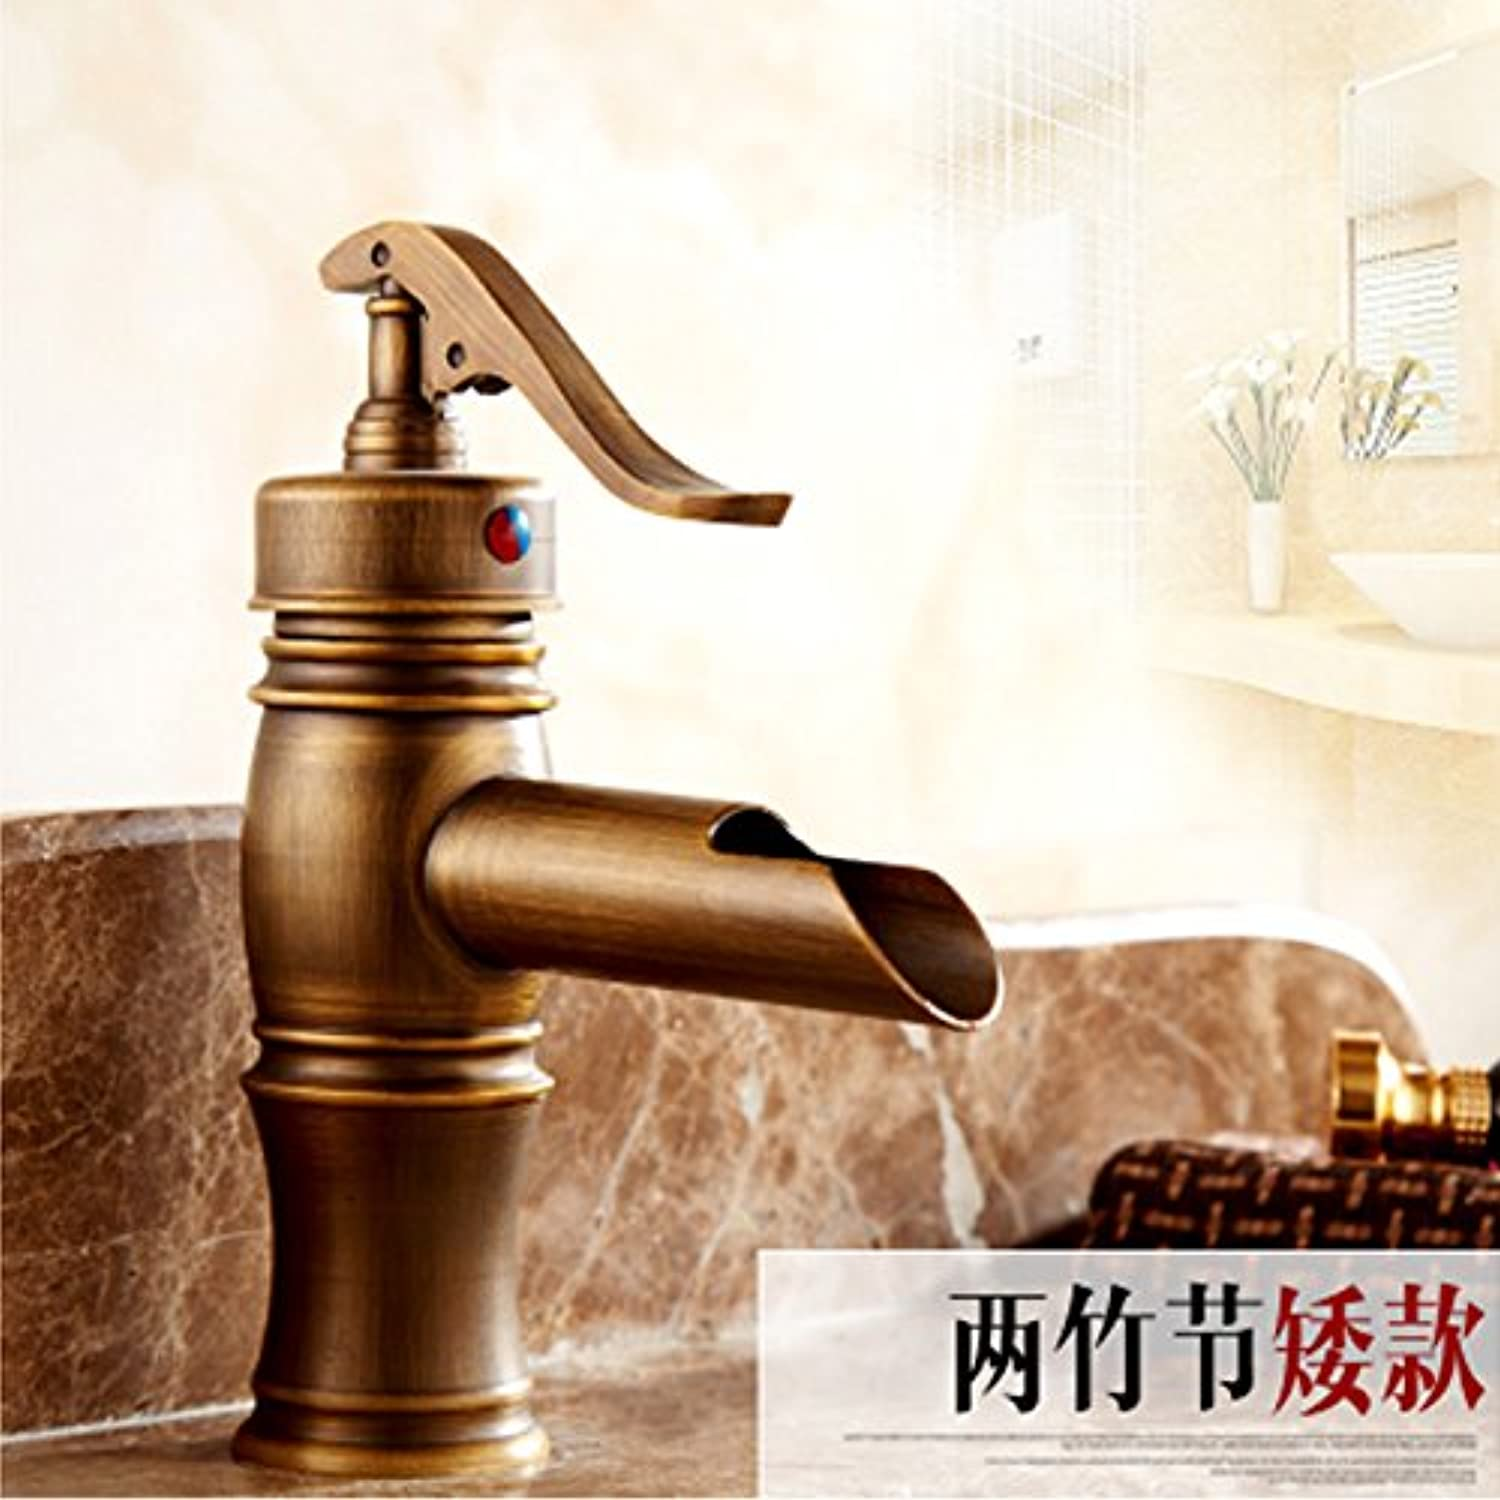 U-Enjoy European Style Antique Top Quality Brushed Brass Bathroom Hot and Cold Mixer Tap Luxury Single Hole Single Handle Art Faucet (Basin Faucet A)